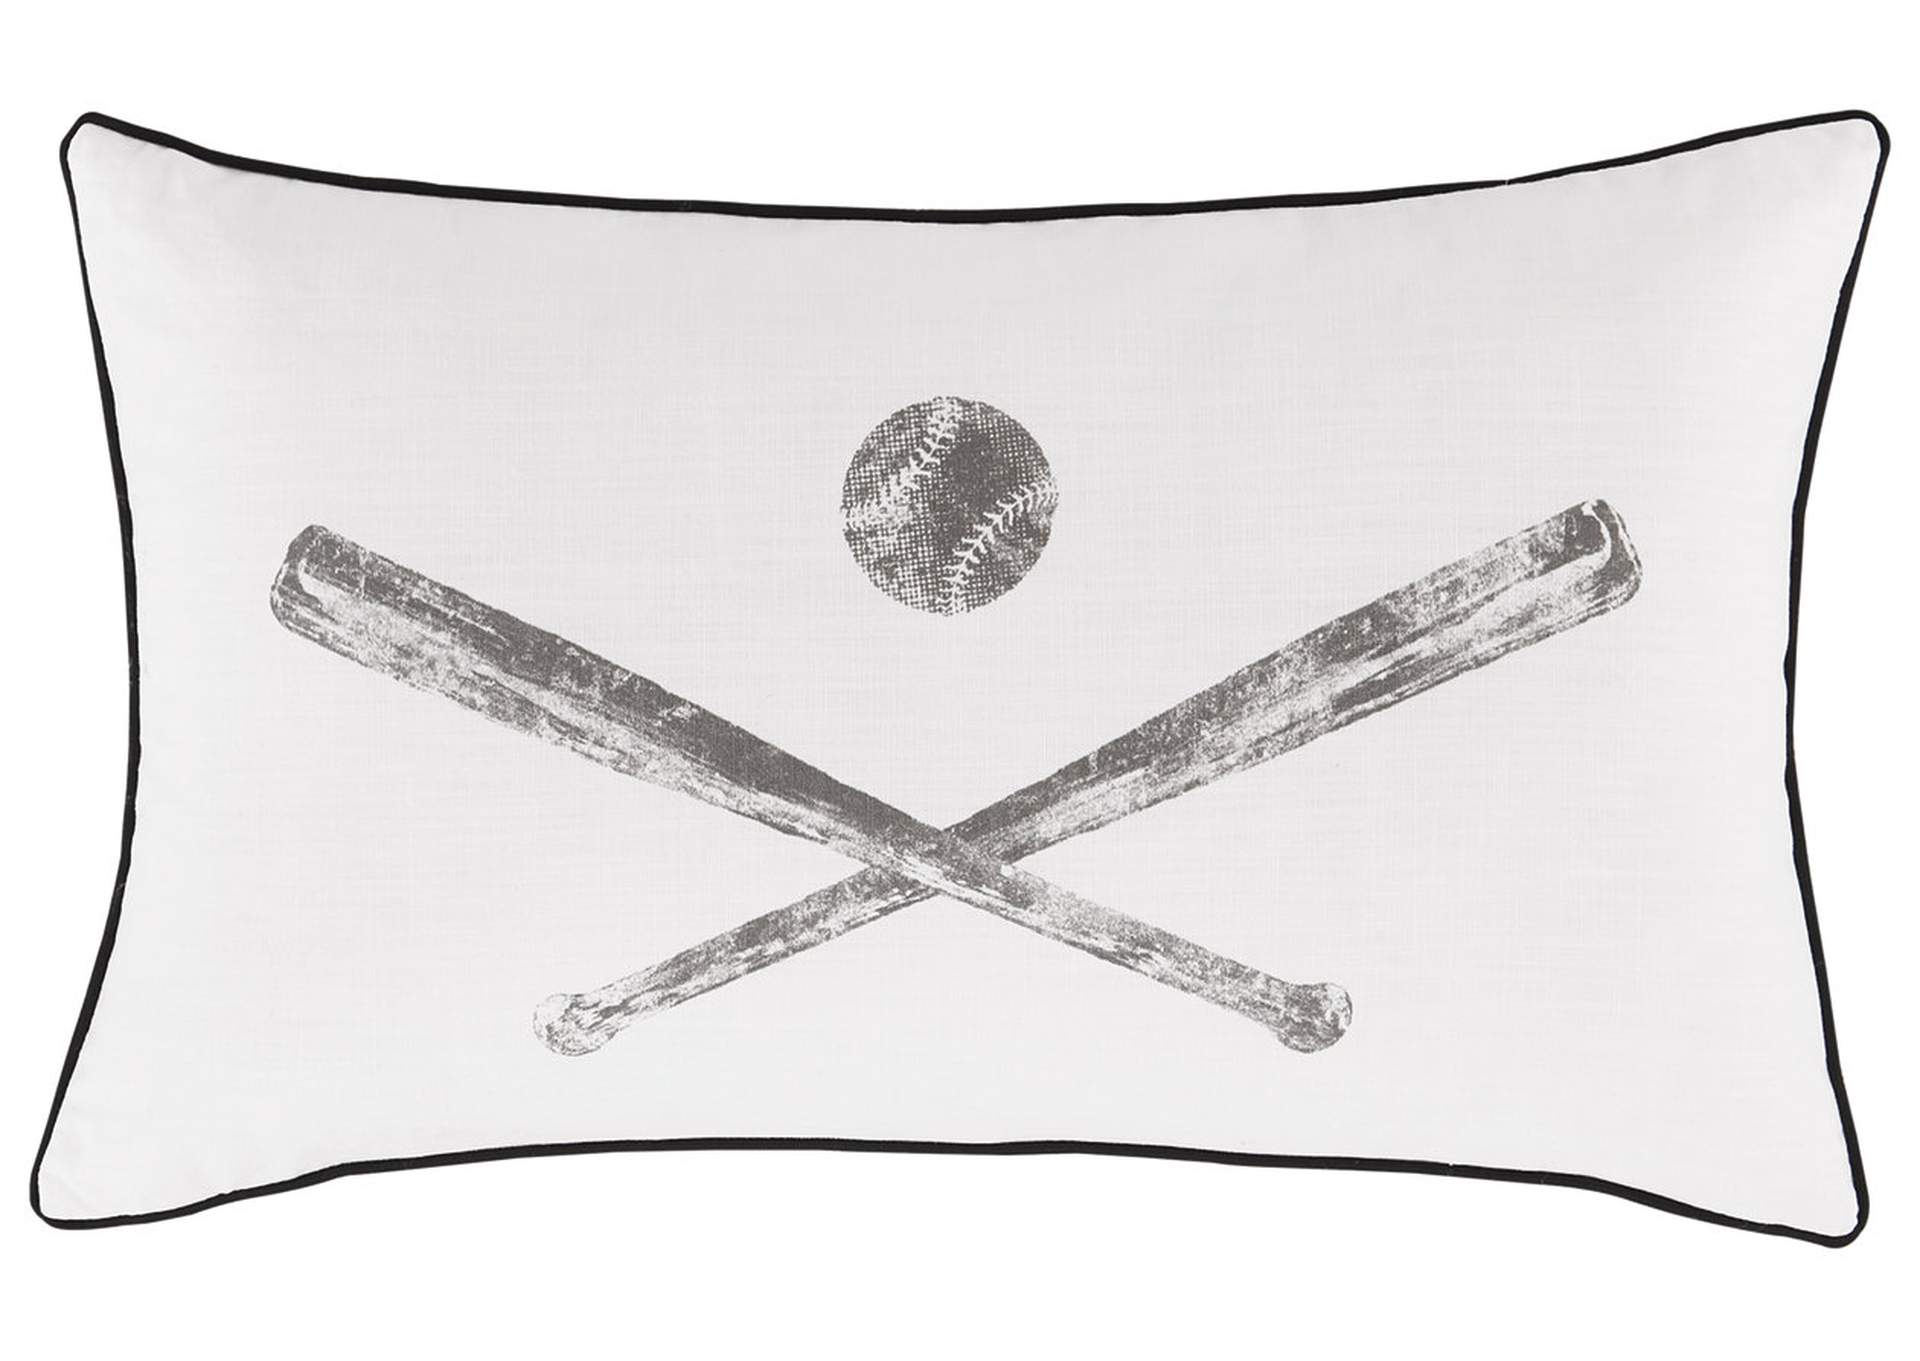 Waman Baseball Design 4 Piece Pillow Set,Direct To Consumer Express